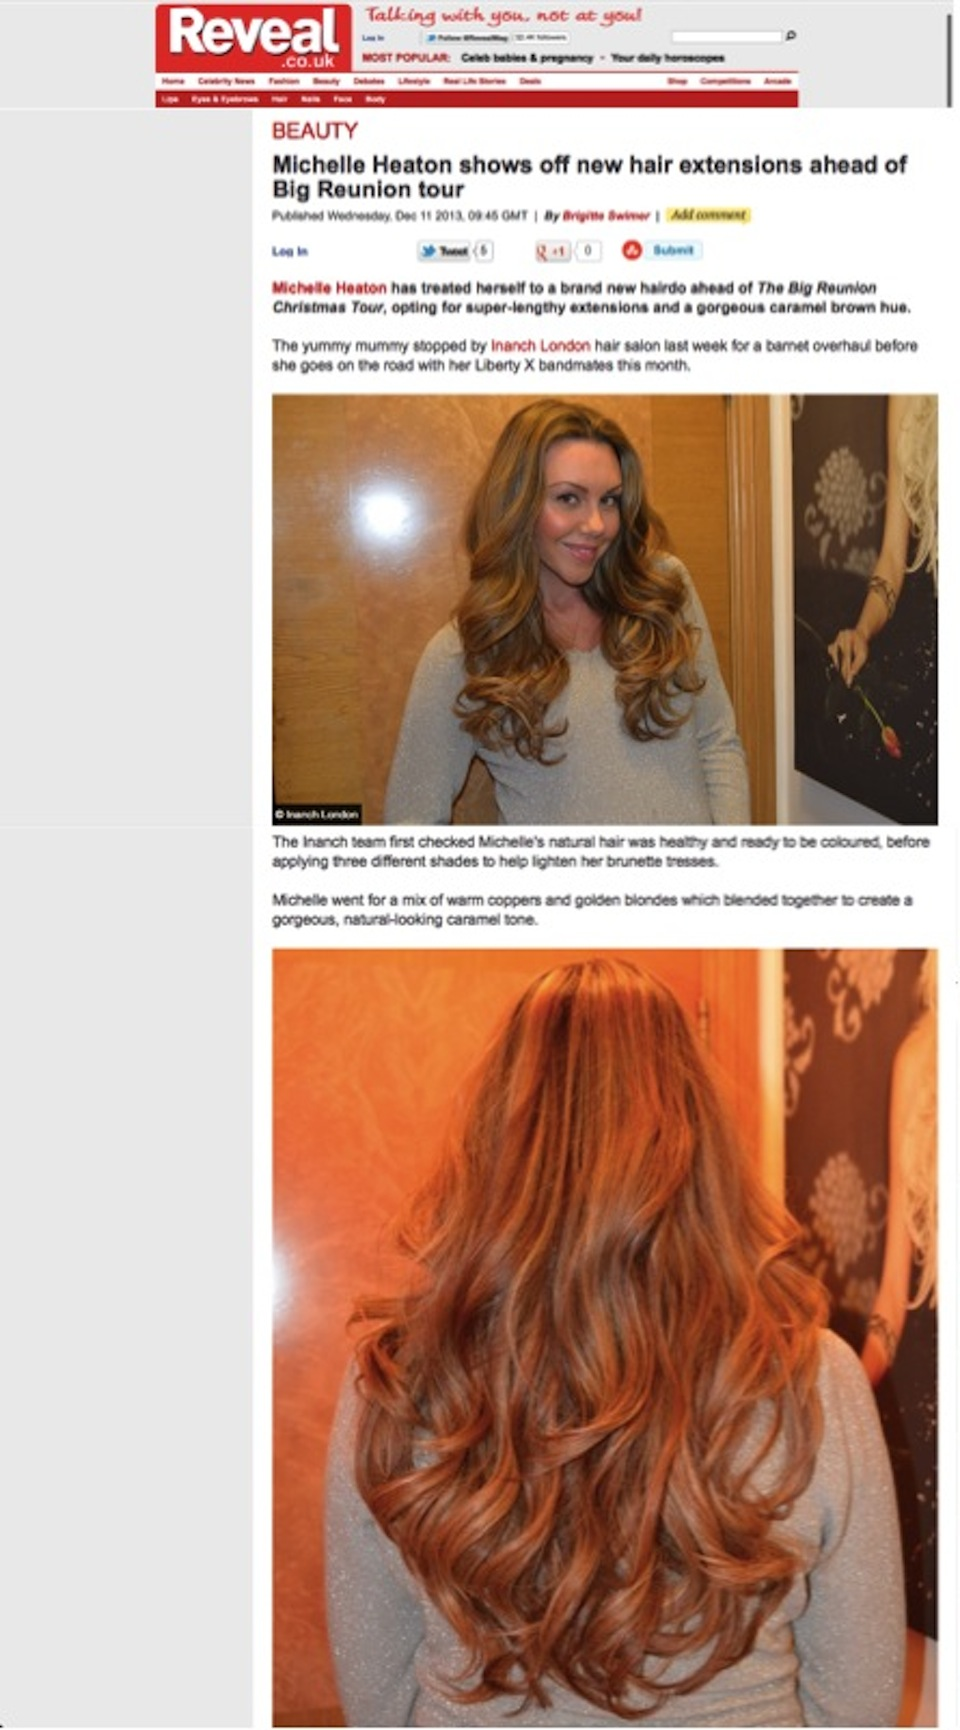 Michelle Heaton Shows Off Her New Hair Extensions Ahead Of The Big